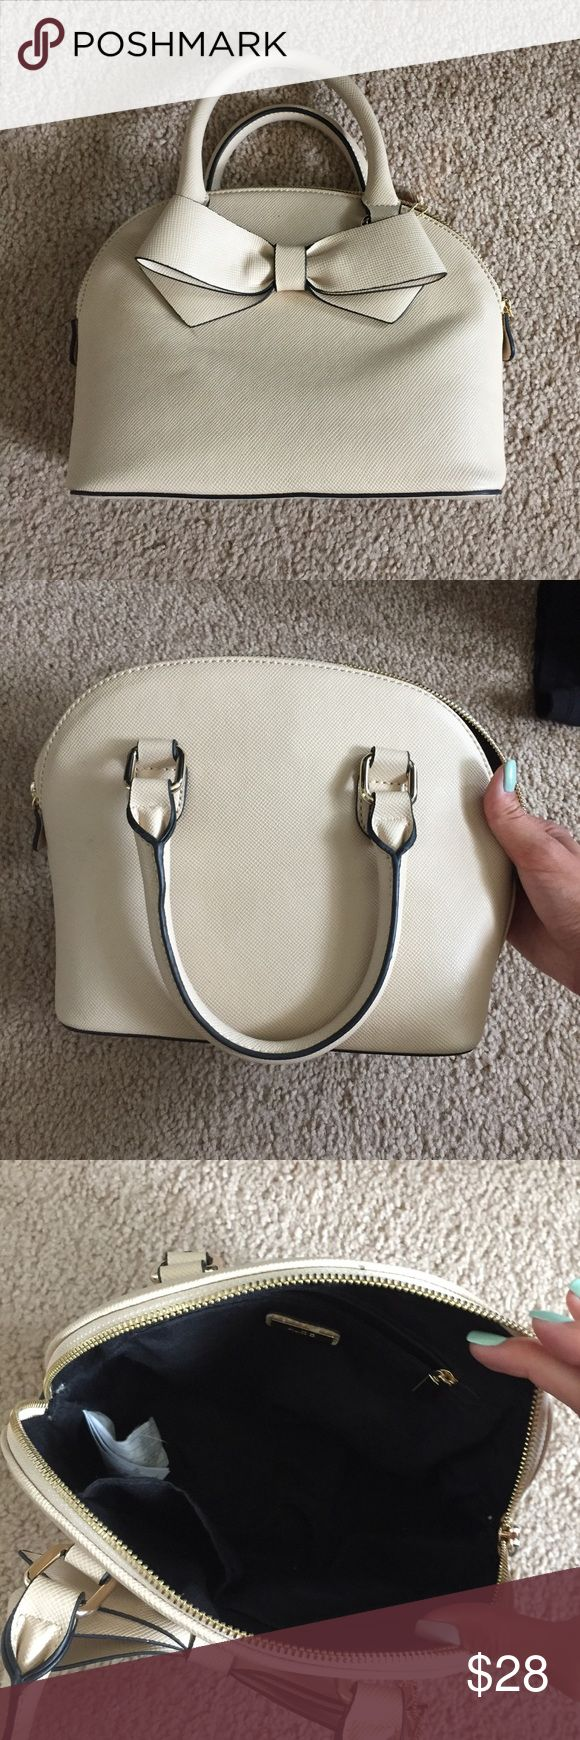 Aldo Cream Bow Purse Cream purse from Aldo. Brand new, never worn. Has a Bow detail. Does not come with additional straps. Aldo Bags Mini Bags